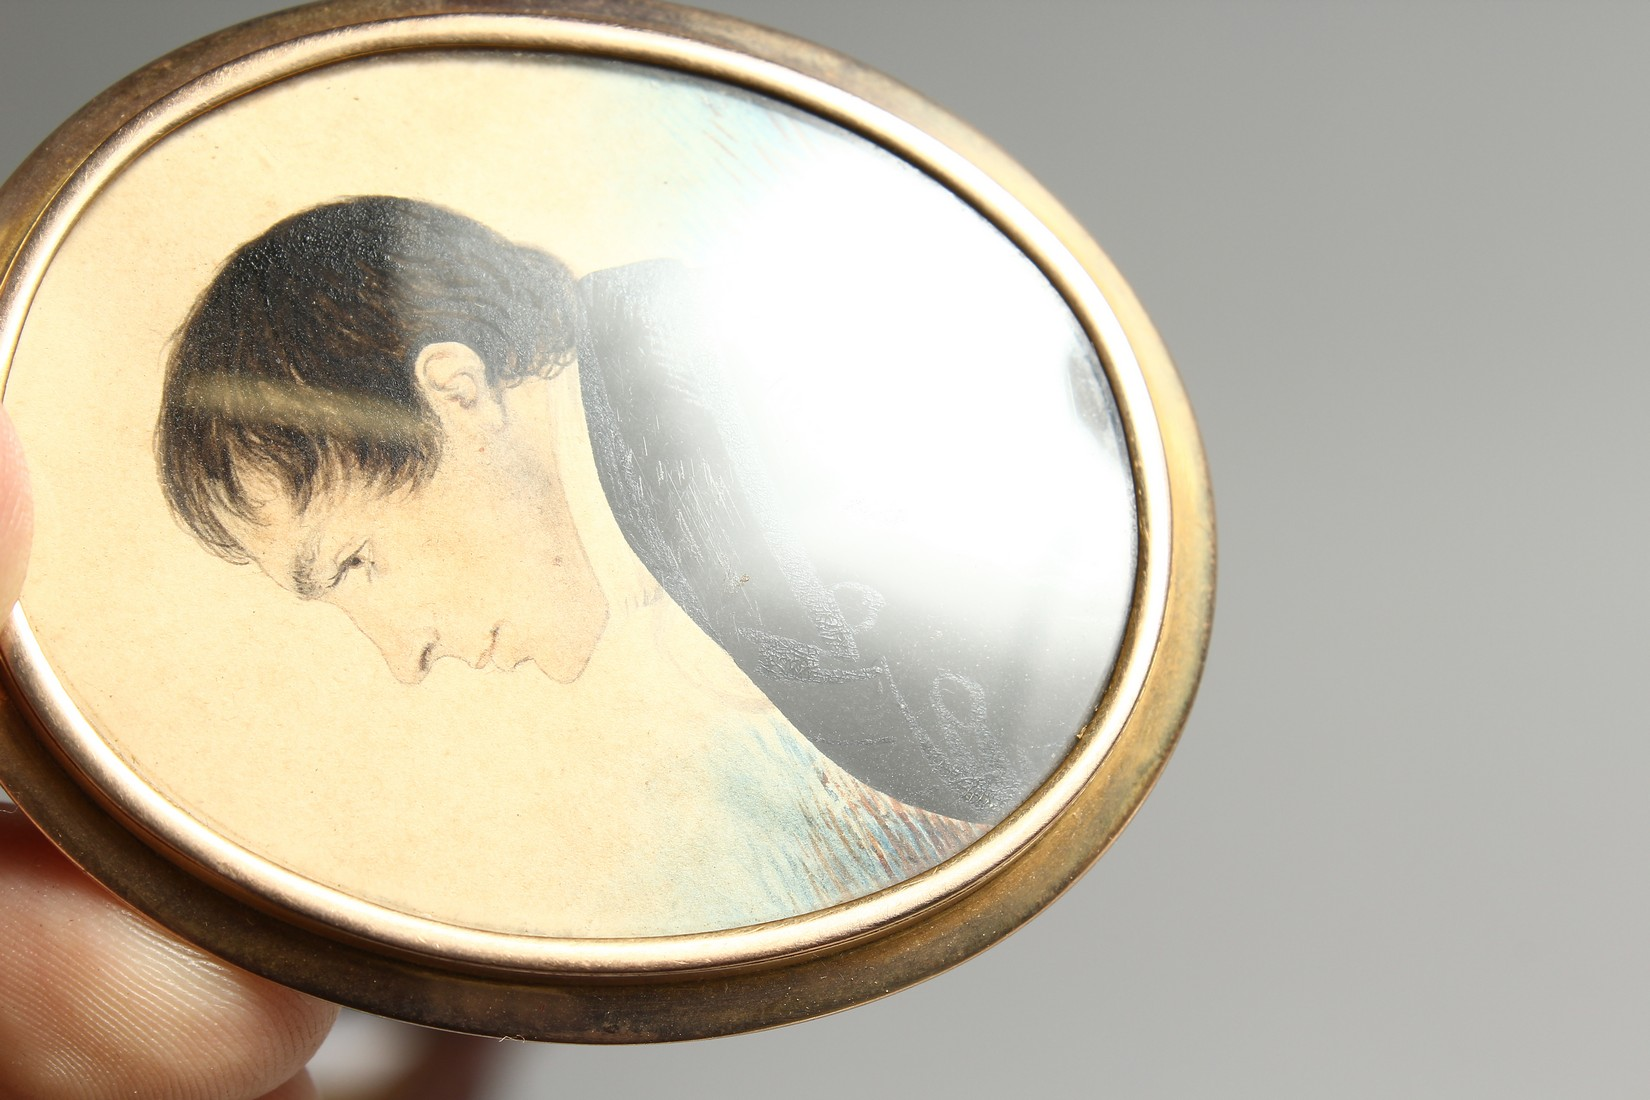 AN EARLY VICTORIAN OVAL MINIATURE OF A GENTLEMAN in a gilt frame. 2.25ins x 1.75ins - Image 4 of 7